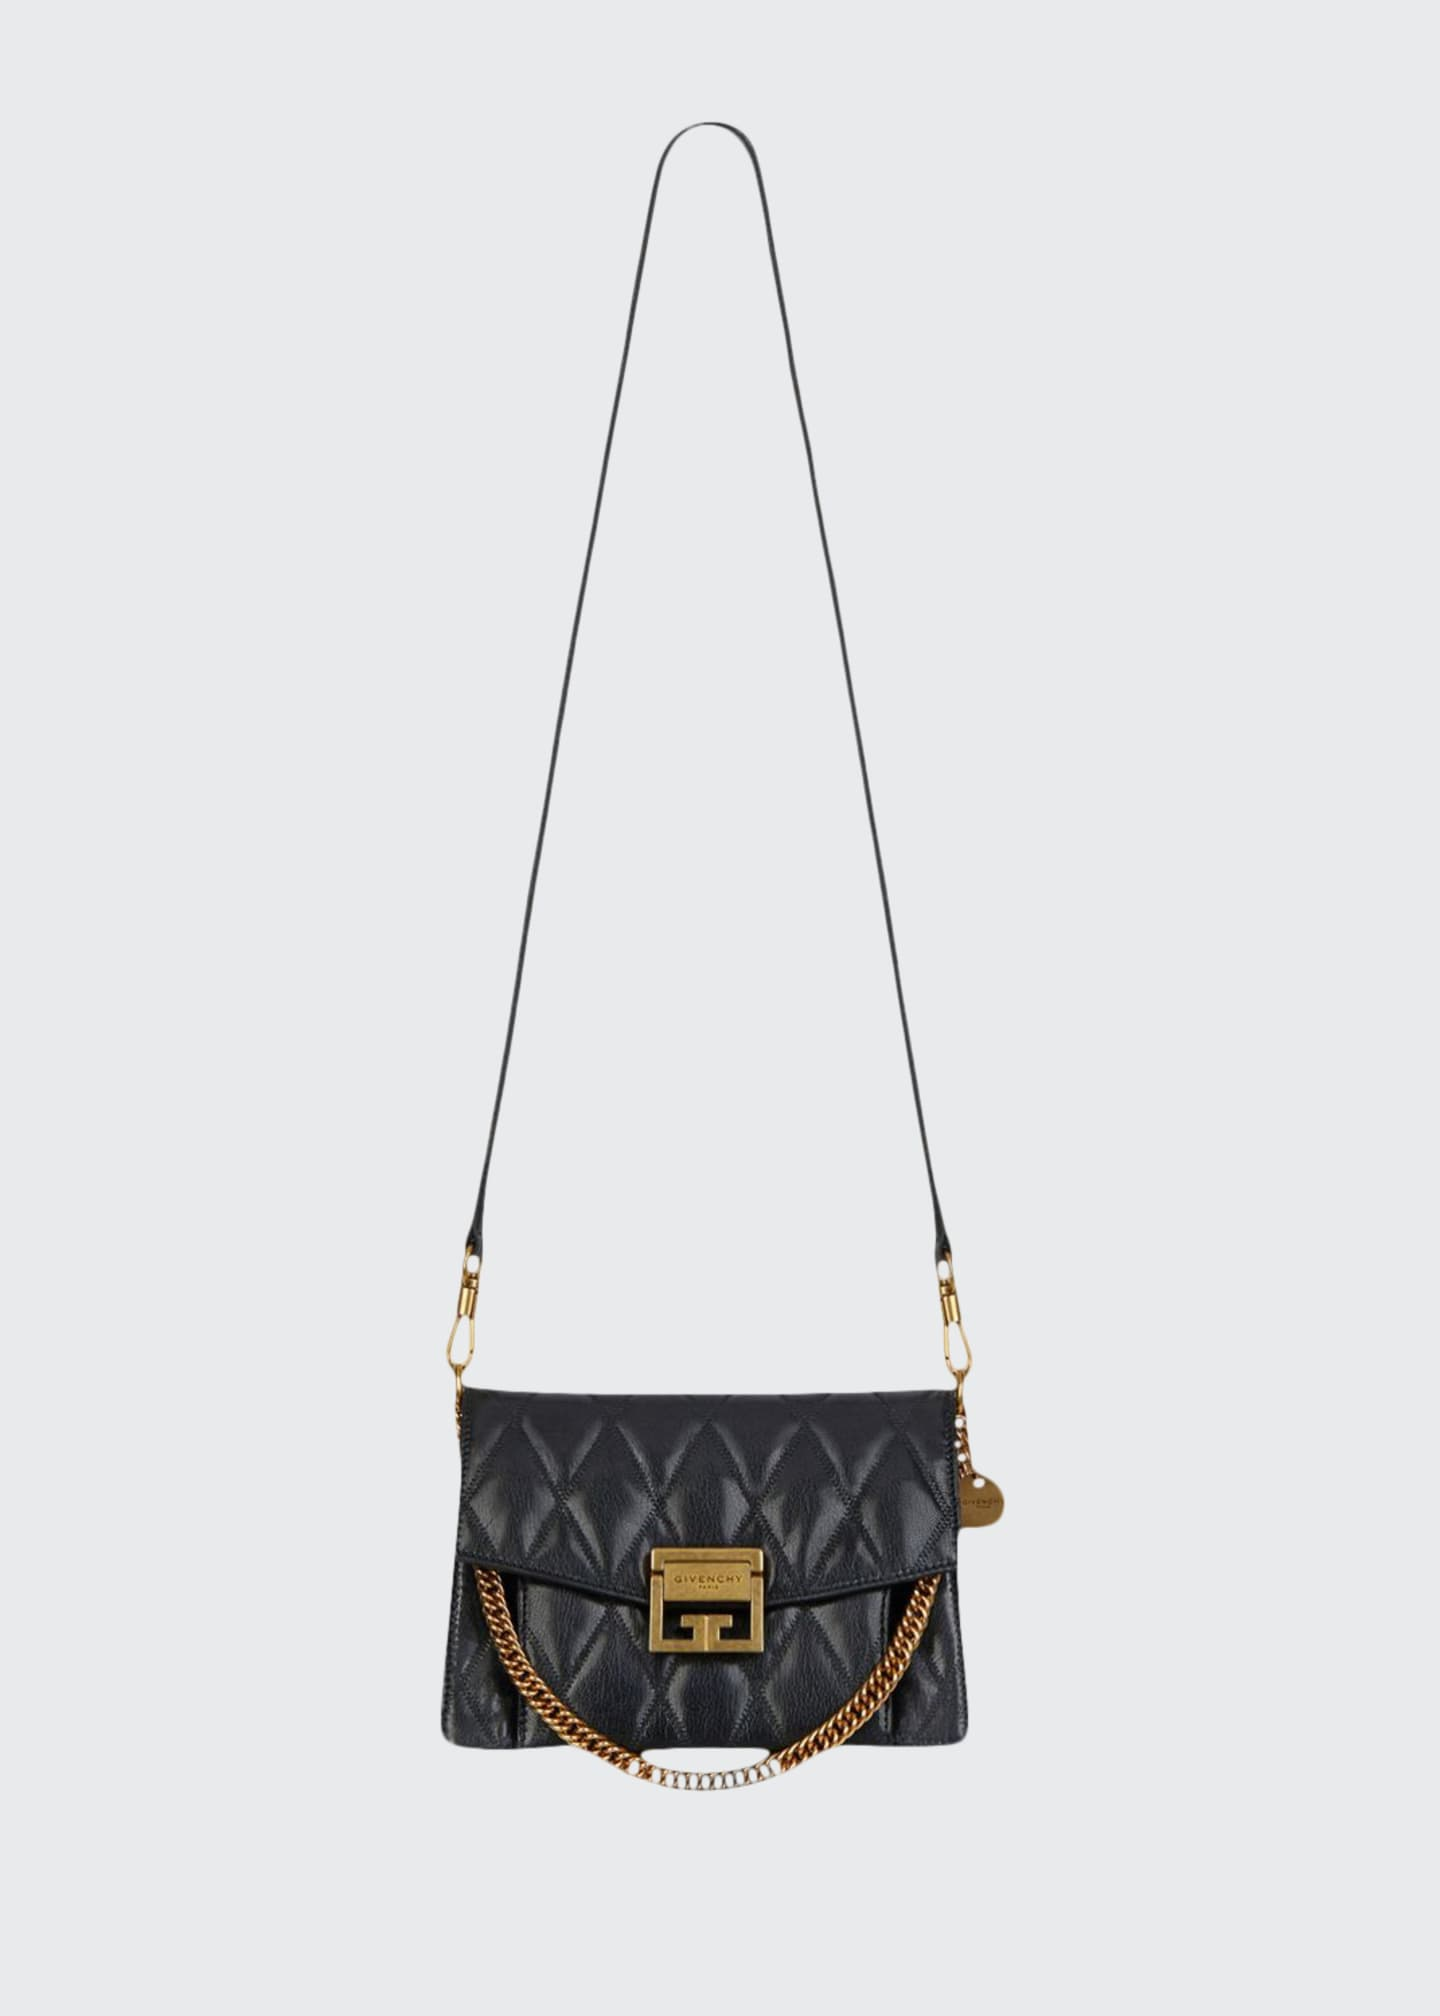 Givenchy GV3 Small Quilted Crossbody Bag